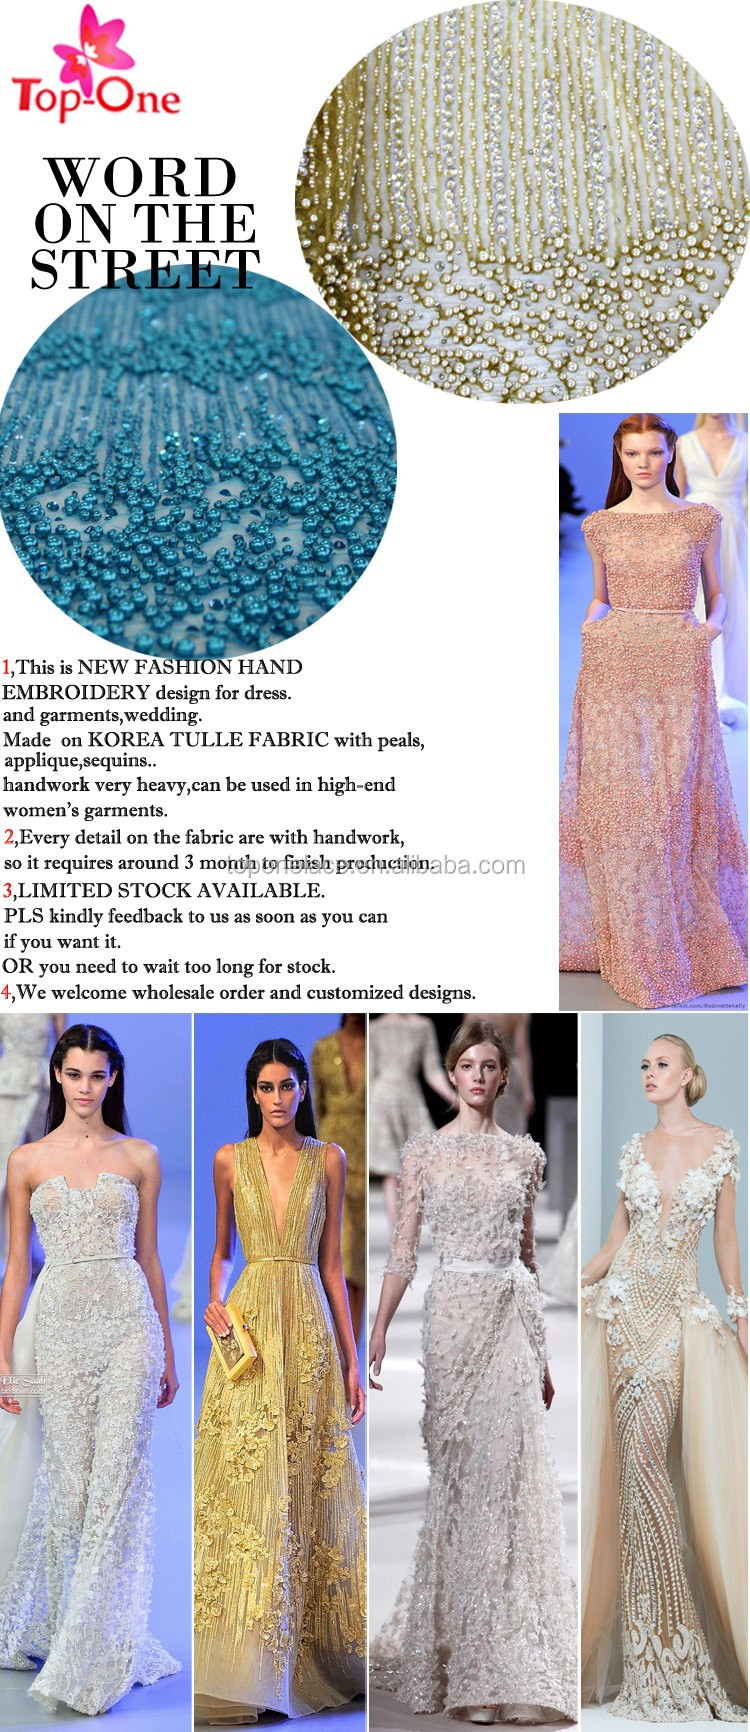 Haute Couture Heavy Beaded Lace Fabric with embroidery on mesh lace Hand Beaded French lace border